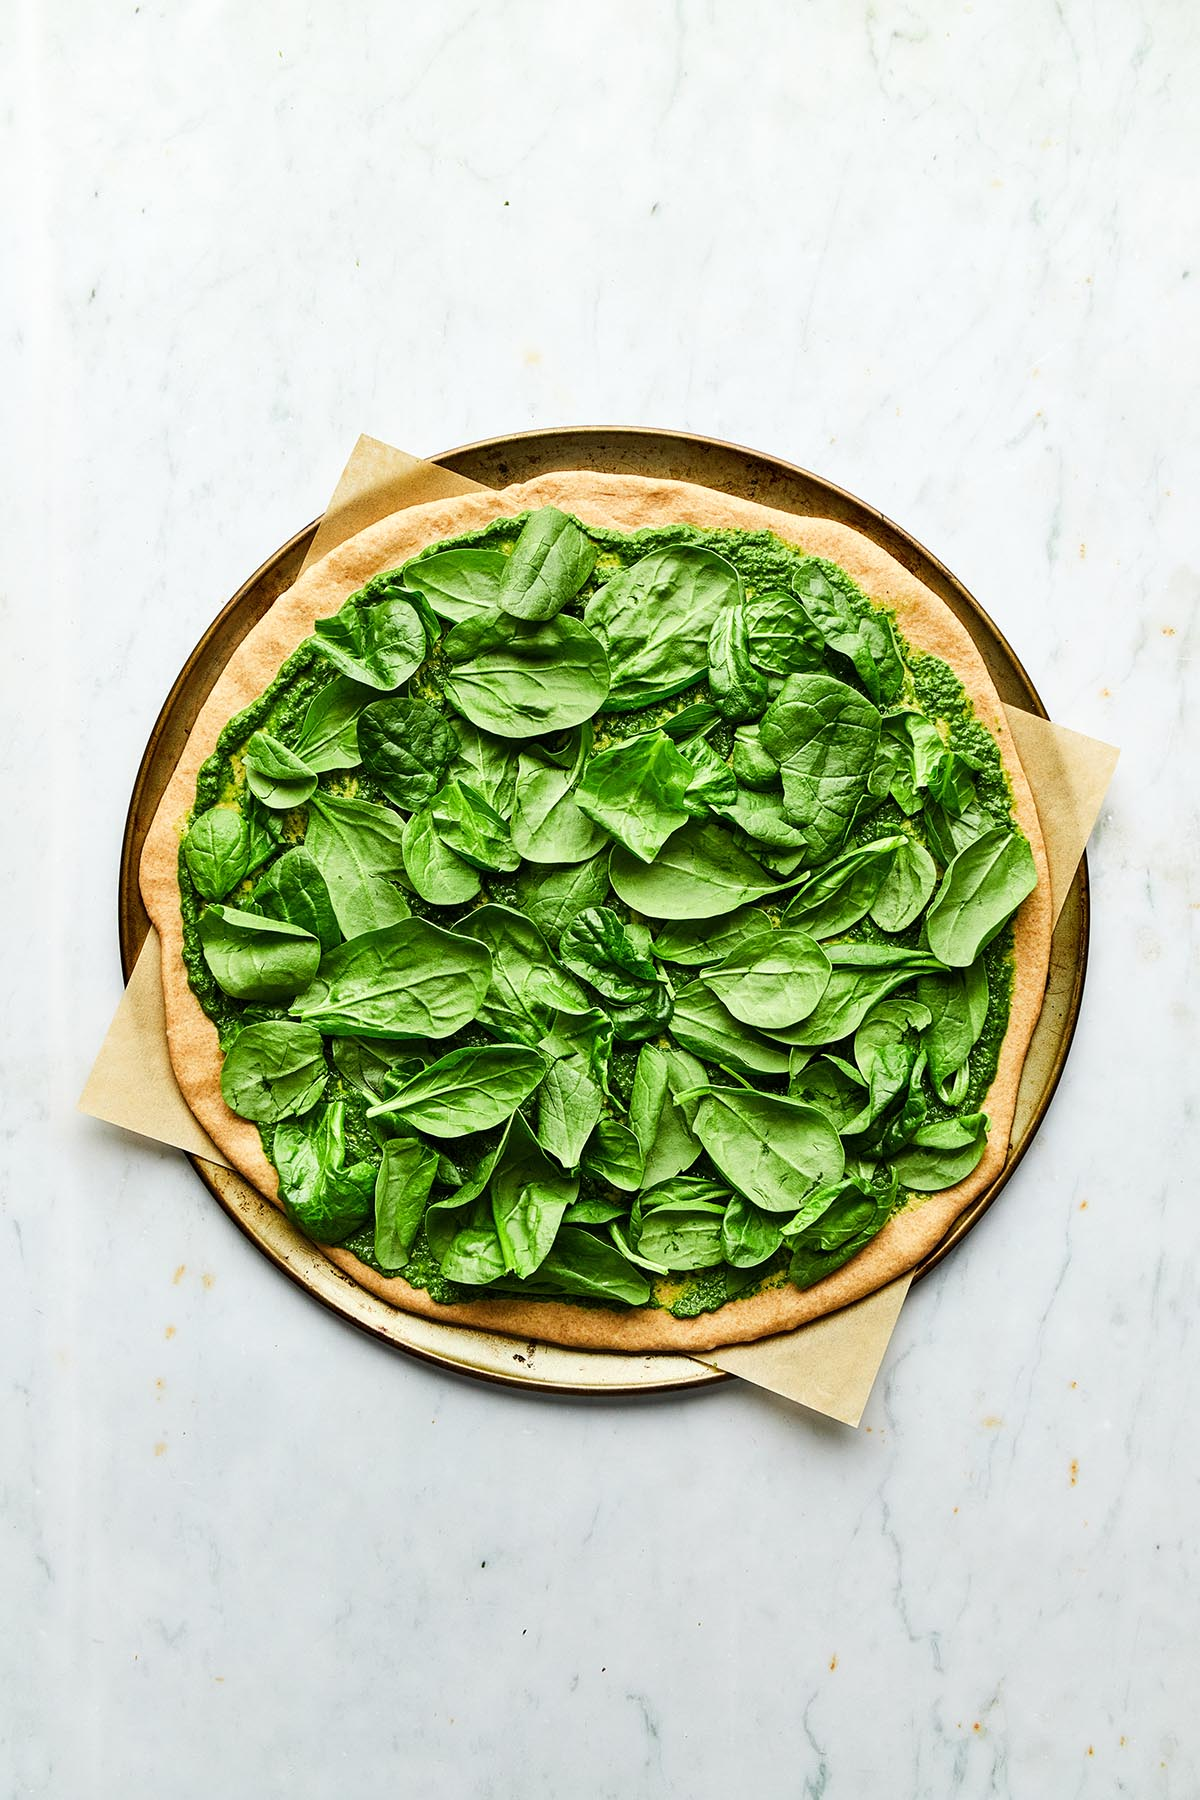 An unbaked pizza topped with spinach.